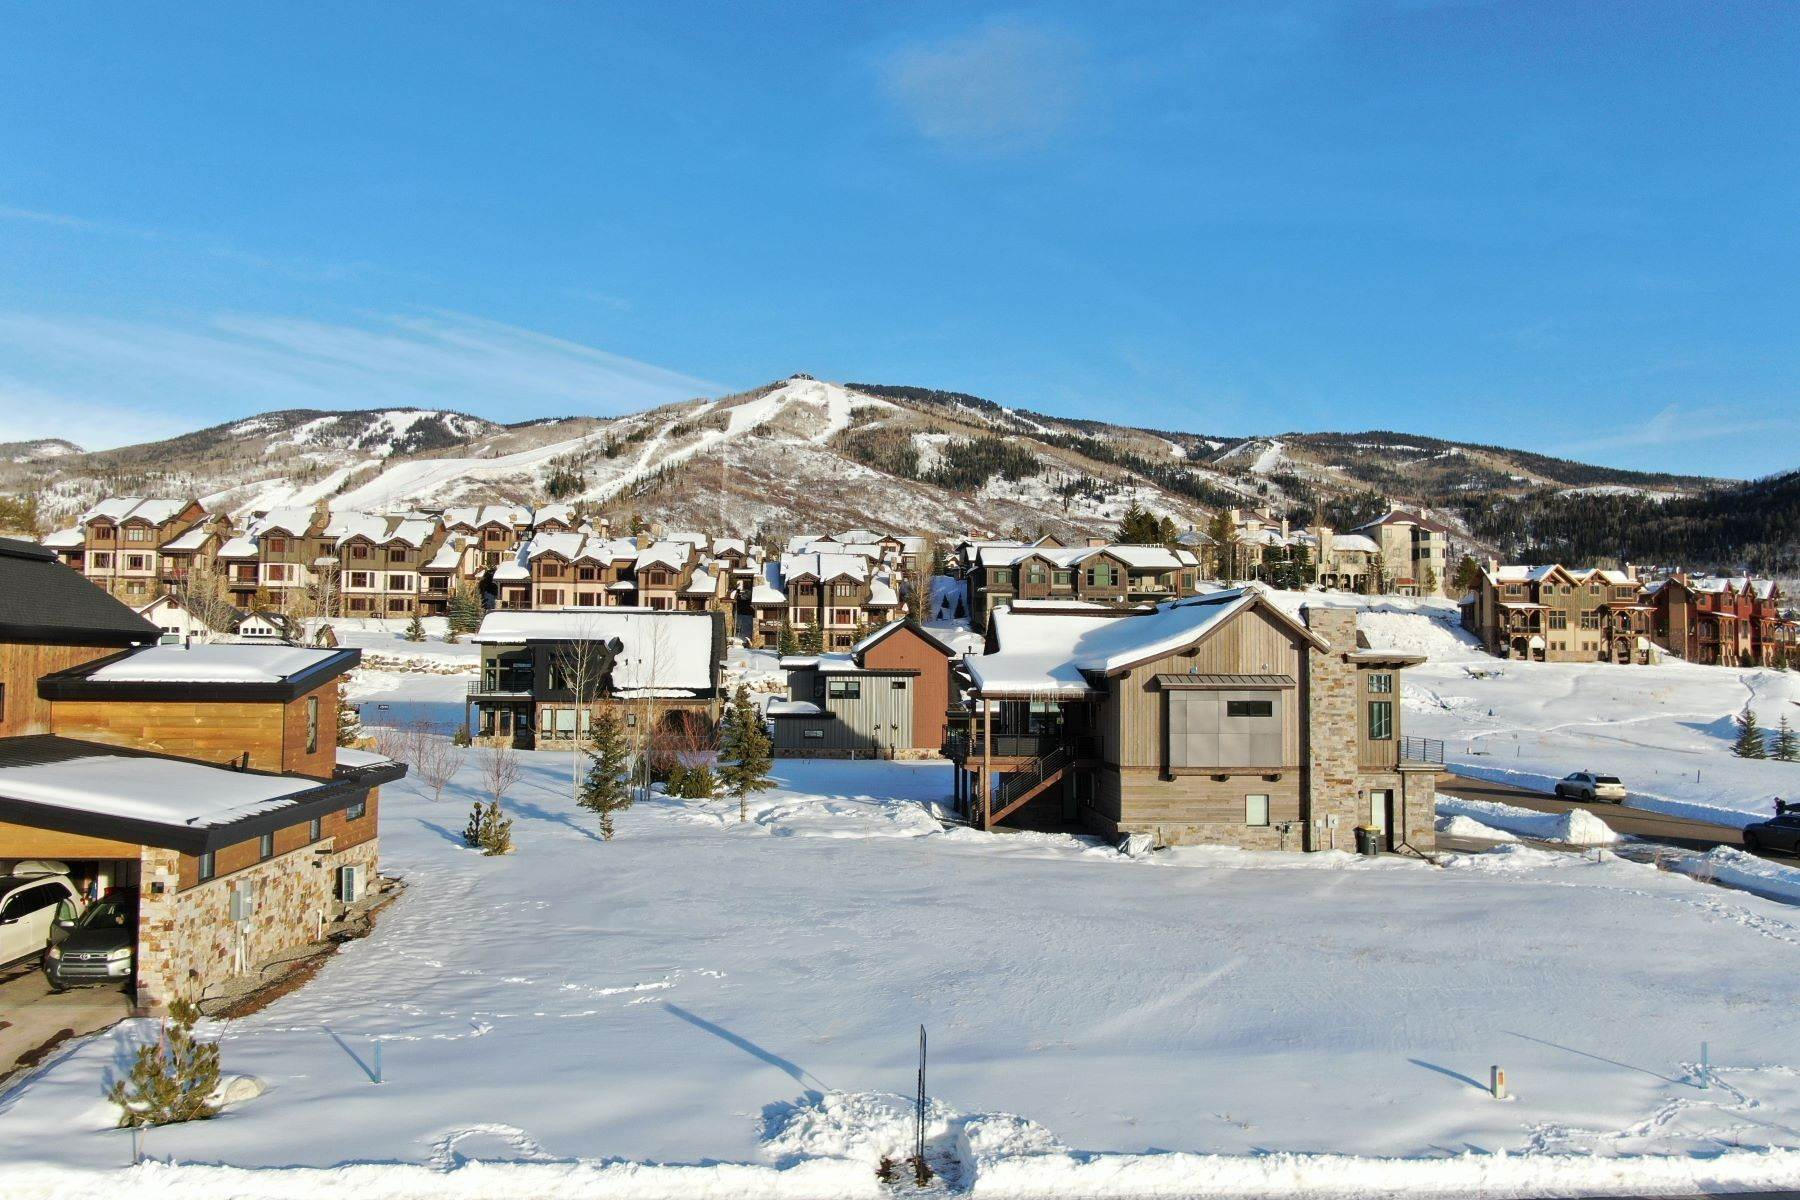 Land for Sale at The Range at Wildhorse Meadows Lot 32 2672 Bronc Buster Loop Steamboat Springs, Colorado 80487 United States